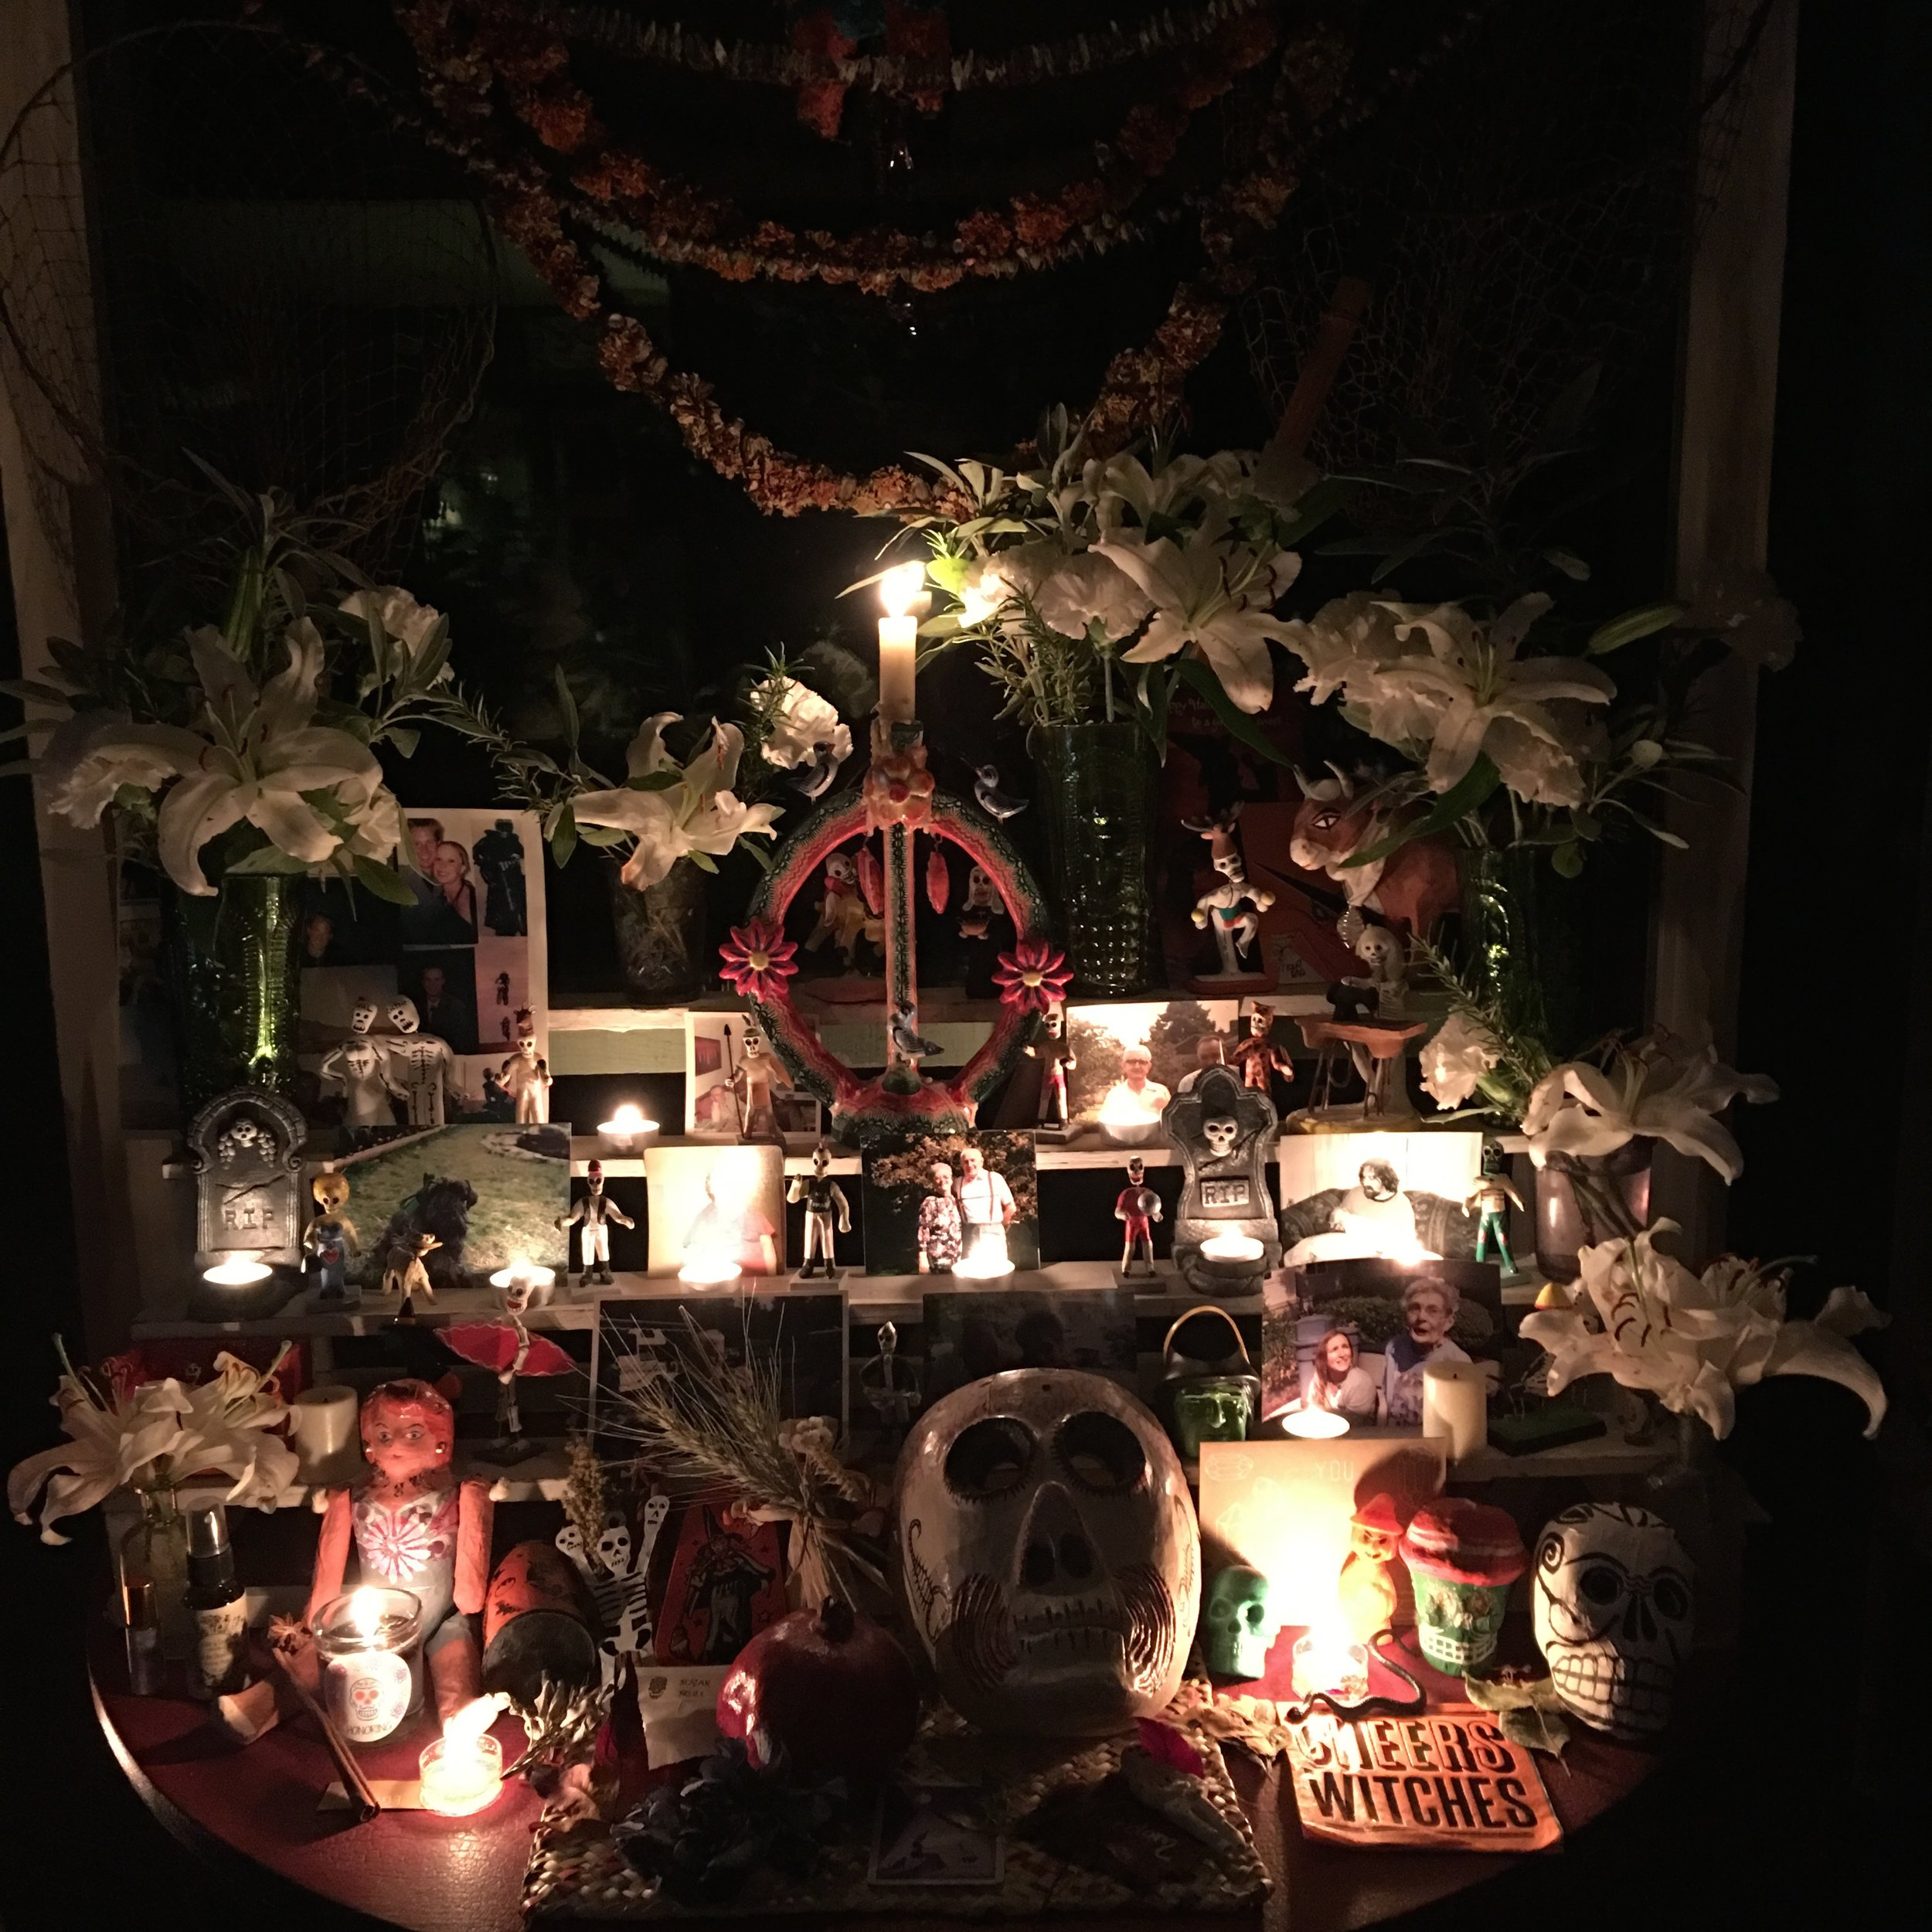 ancestor altar for Samhain - i come from my placental ancestors, i do not walk alone.